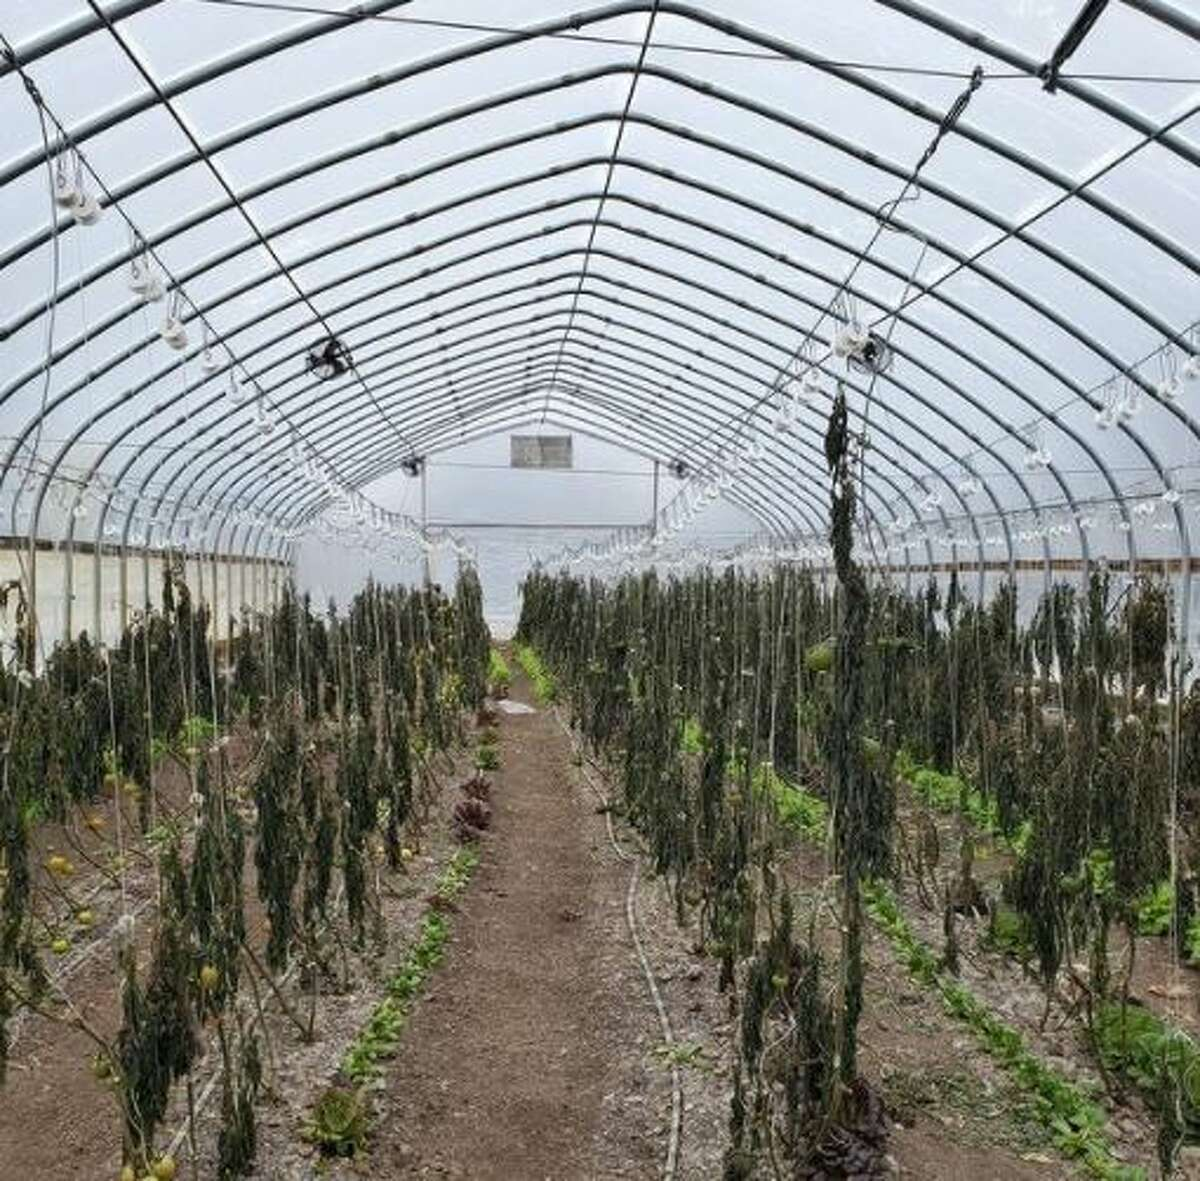 Cody Scott, owner of Green Bexar Farm in St. Hedwig, told MySA.com the power outages resulted in him losing 2,800 plants scattered throughout his two greenhouses.